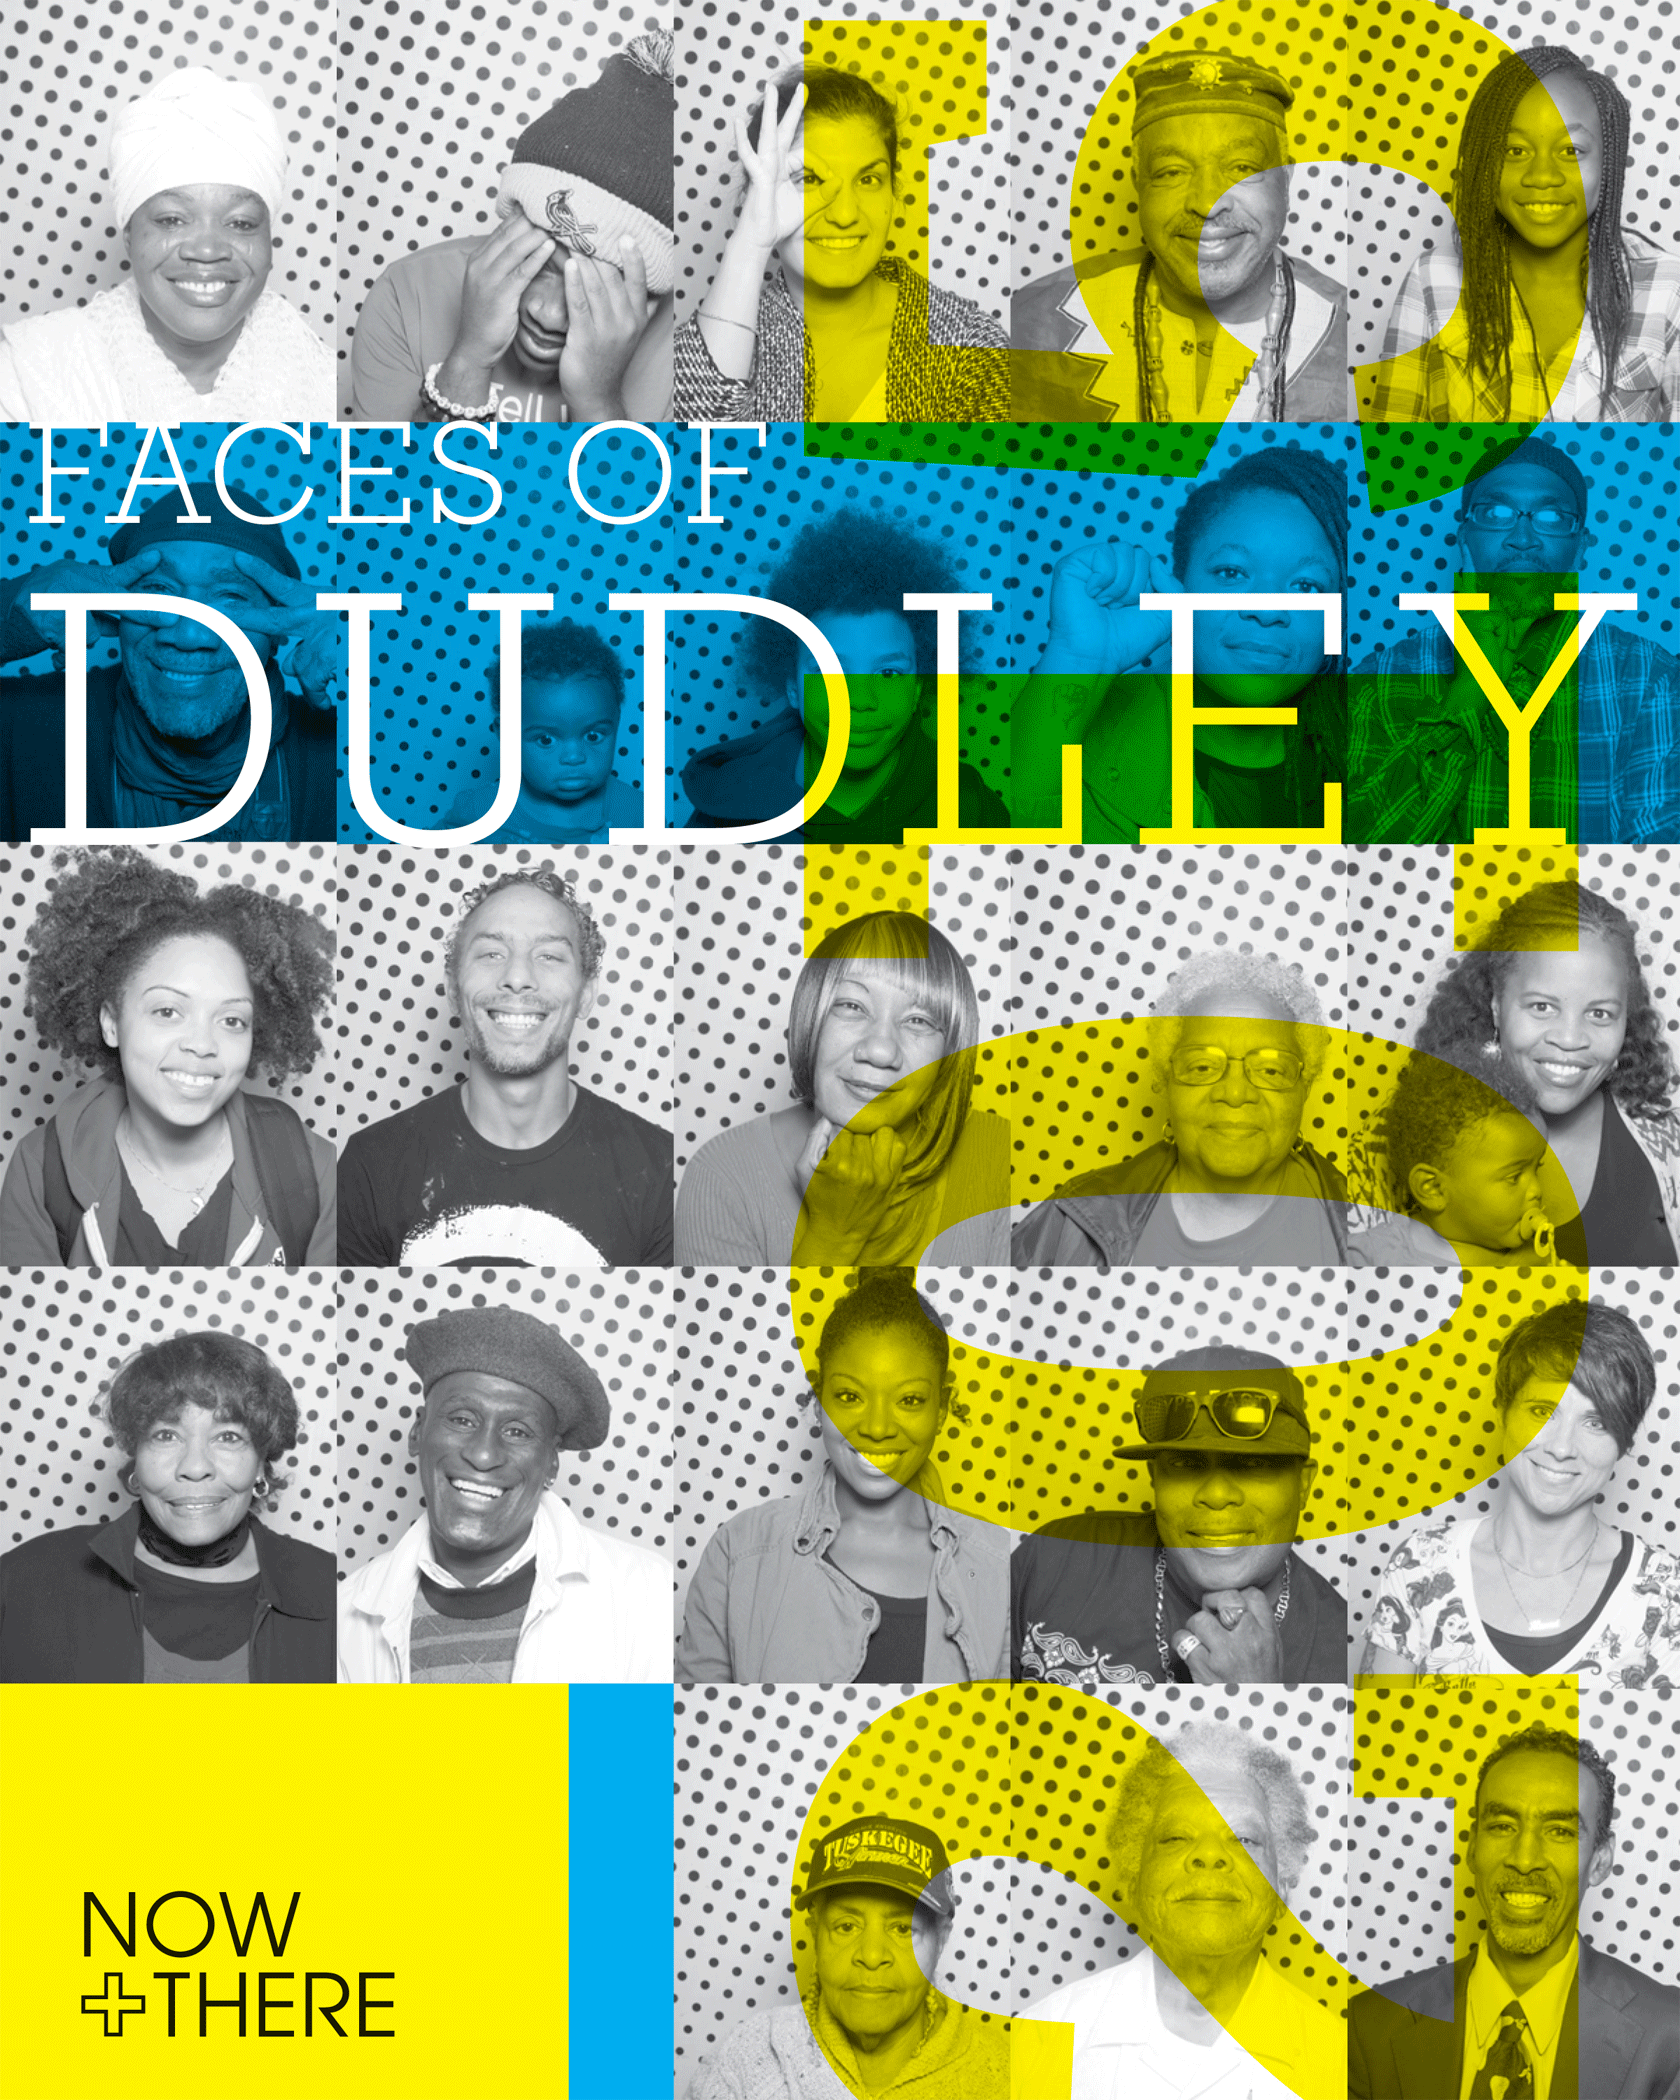 Forthcoming book, Faces of Dudley.